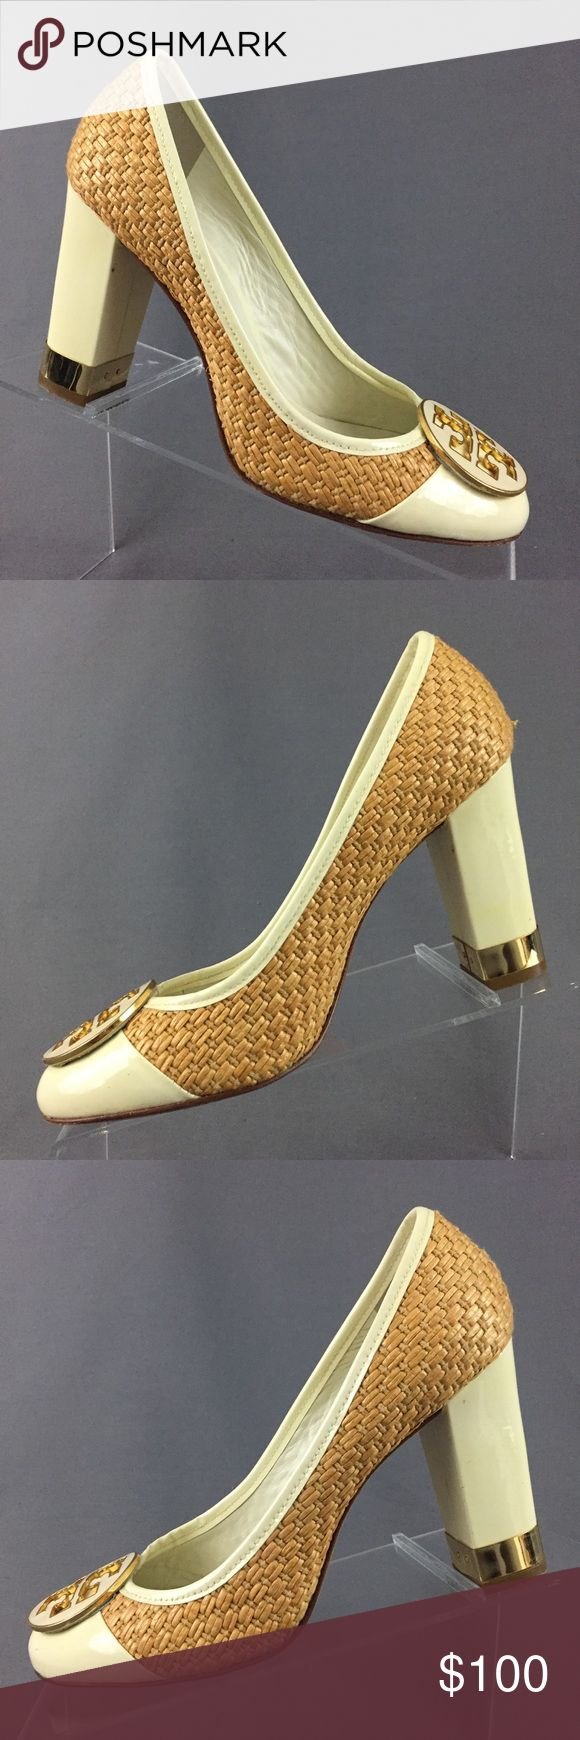 """Tory Burch Pumps Women's 6.5 Heels Tory Burch Pumps Women's size 6.5 M US Woven straw rattan pattern with patent cream leather upper Heel: 3"""" Good used condition  Please refer to pictures for details and feel free to ask questions prior to purchasing. Tory Burch Shoes Heels"""